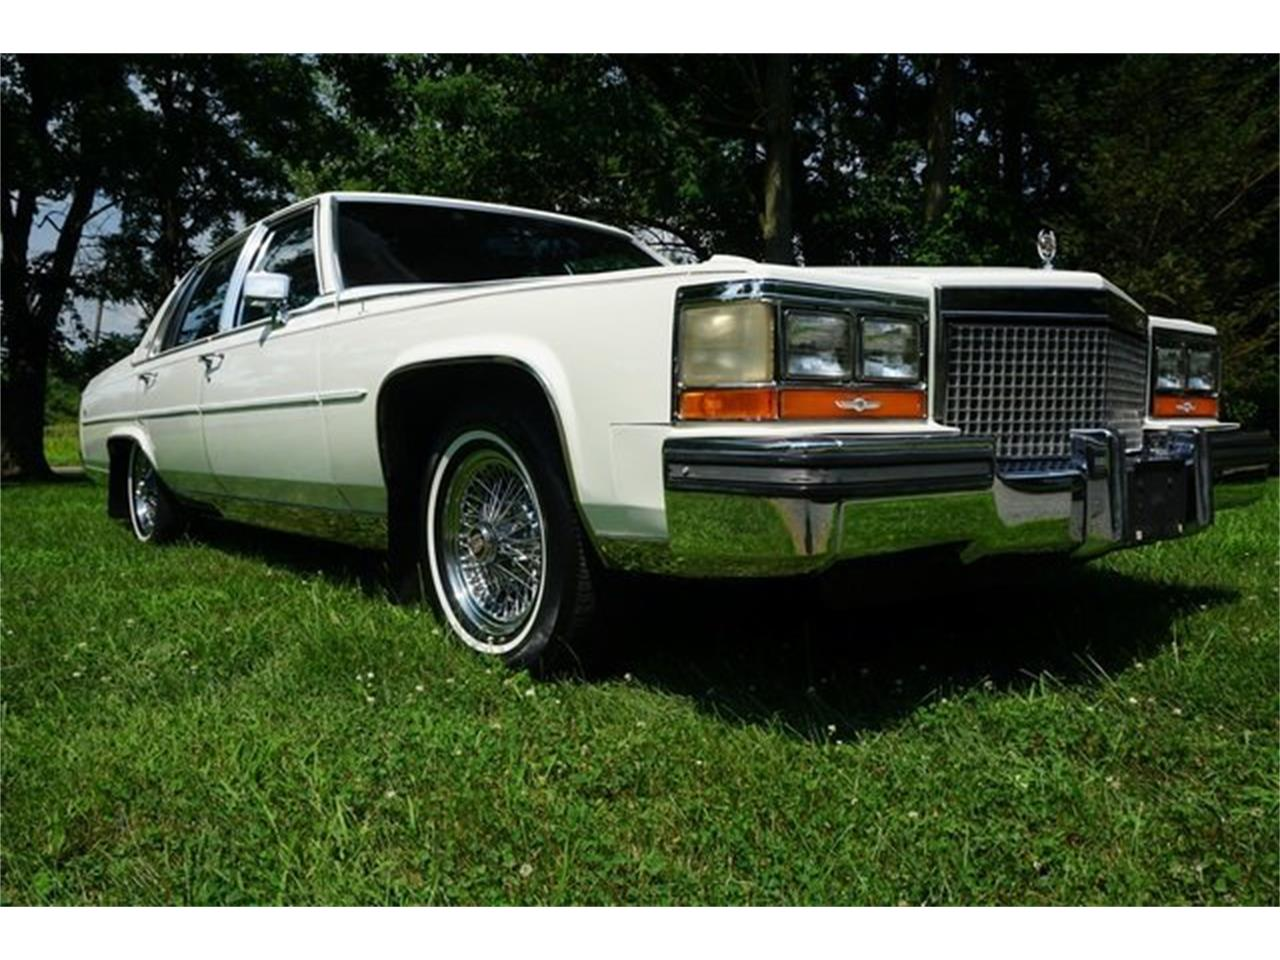 For Sale: 1987 Cadillac Fleetwood Brougham in Monroe, New Jersey